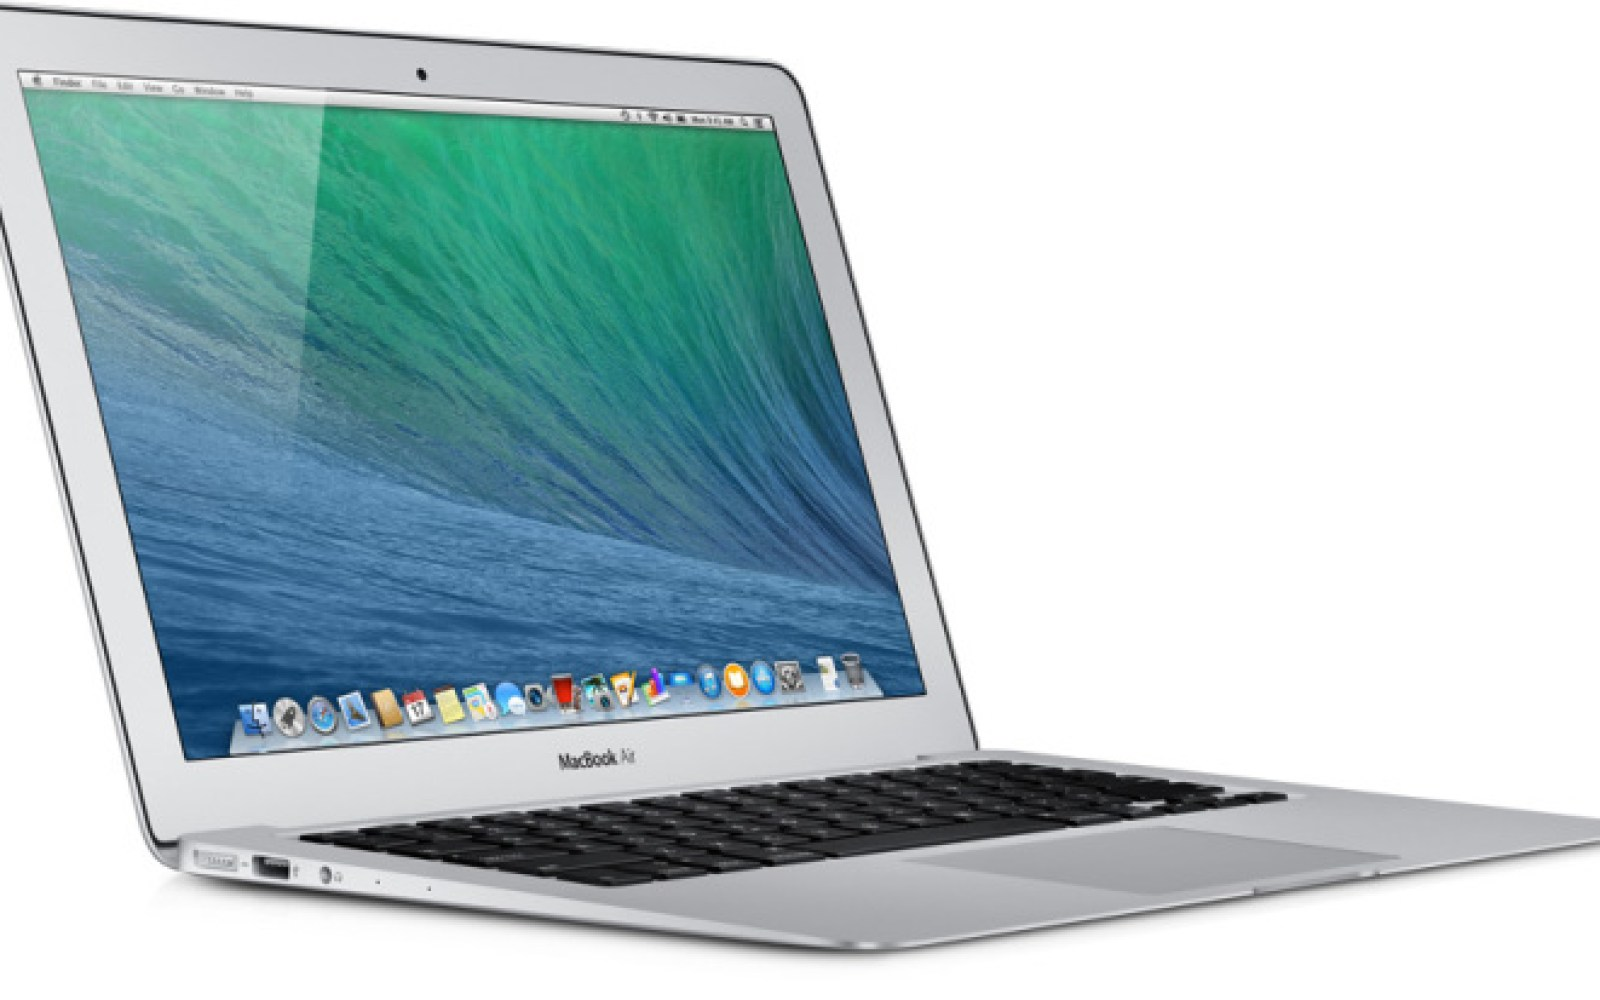 When is Apple going to release a Retina MacBook Air? More signs point to 'soon'